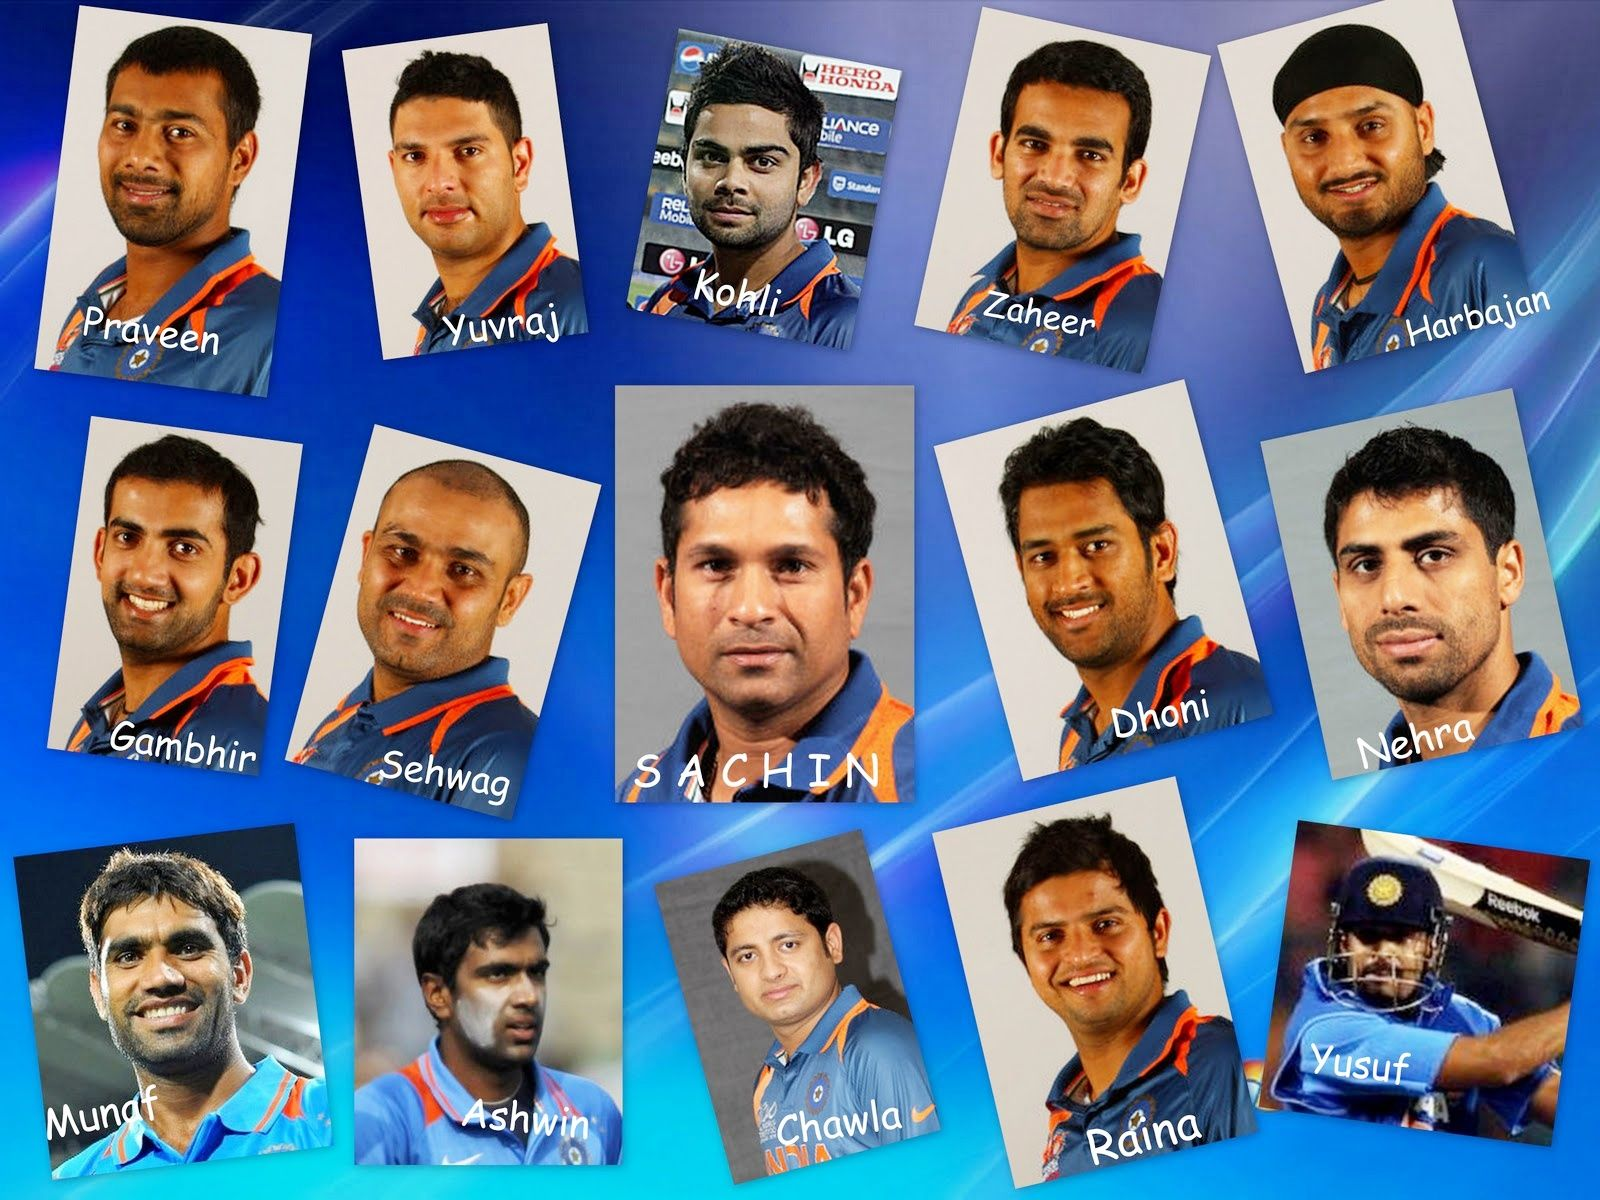 2011 Team India World Cup Wallpapers Hd Wallpapers Cricket Teams Rugby World Cup Team Wallpaper